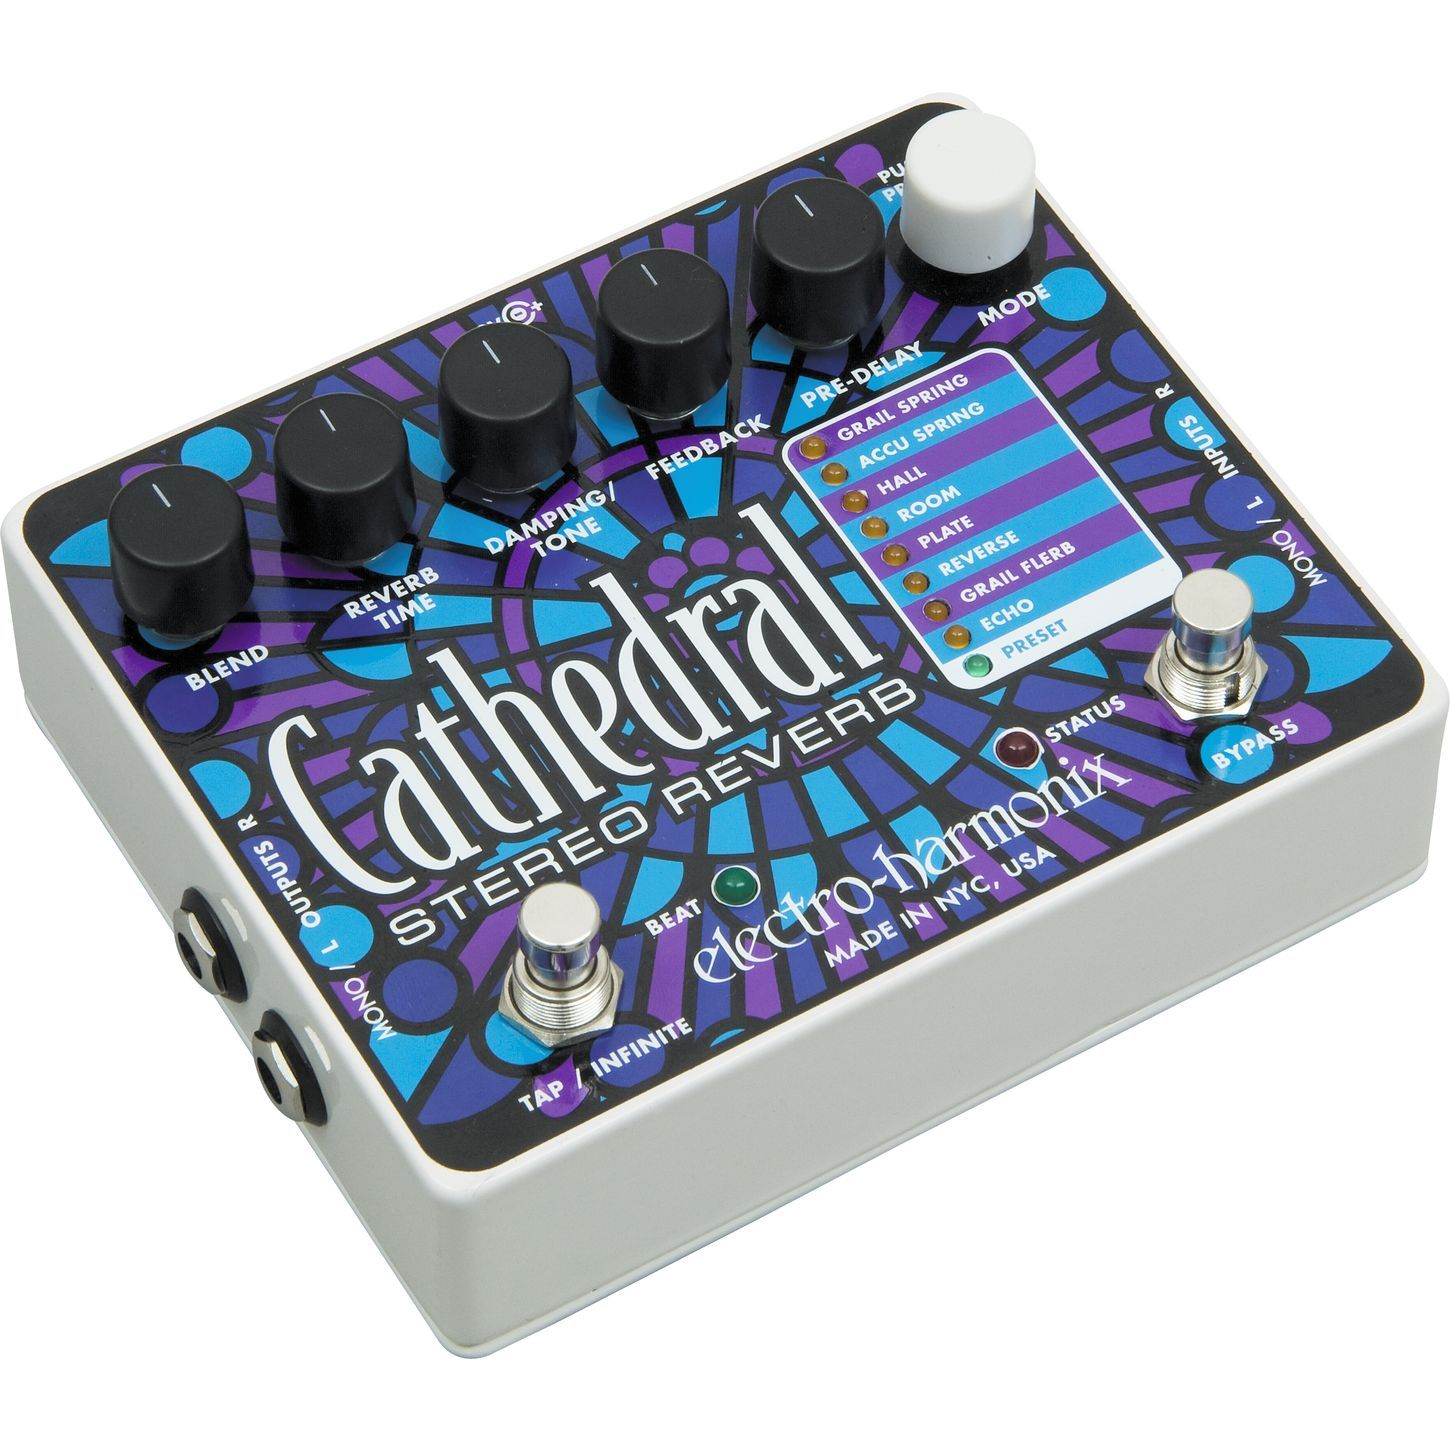 cathedral stereo reverb guitar effects pedal guitar guitar effects pedals guitar pedals guitar. Black Bedroom Furniture Sets. Home Design Ideas